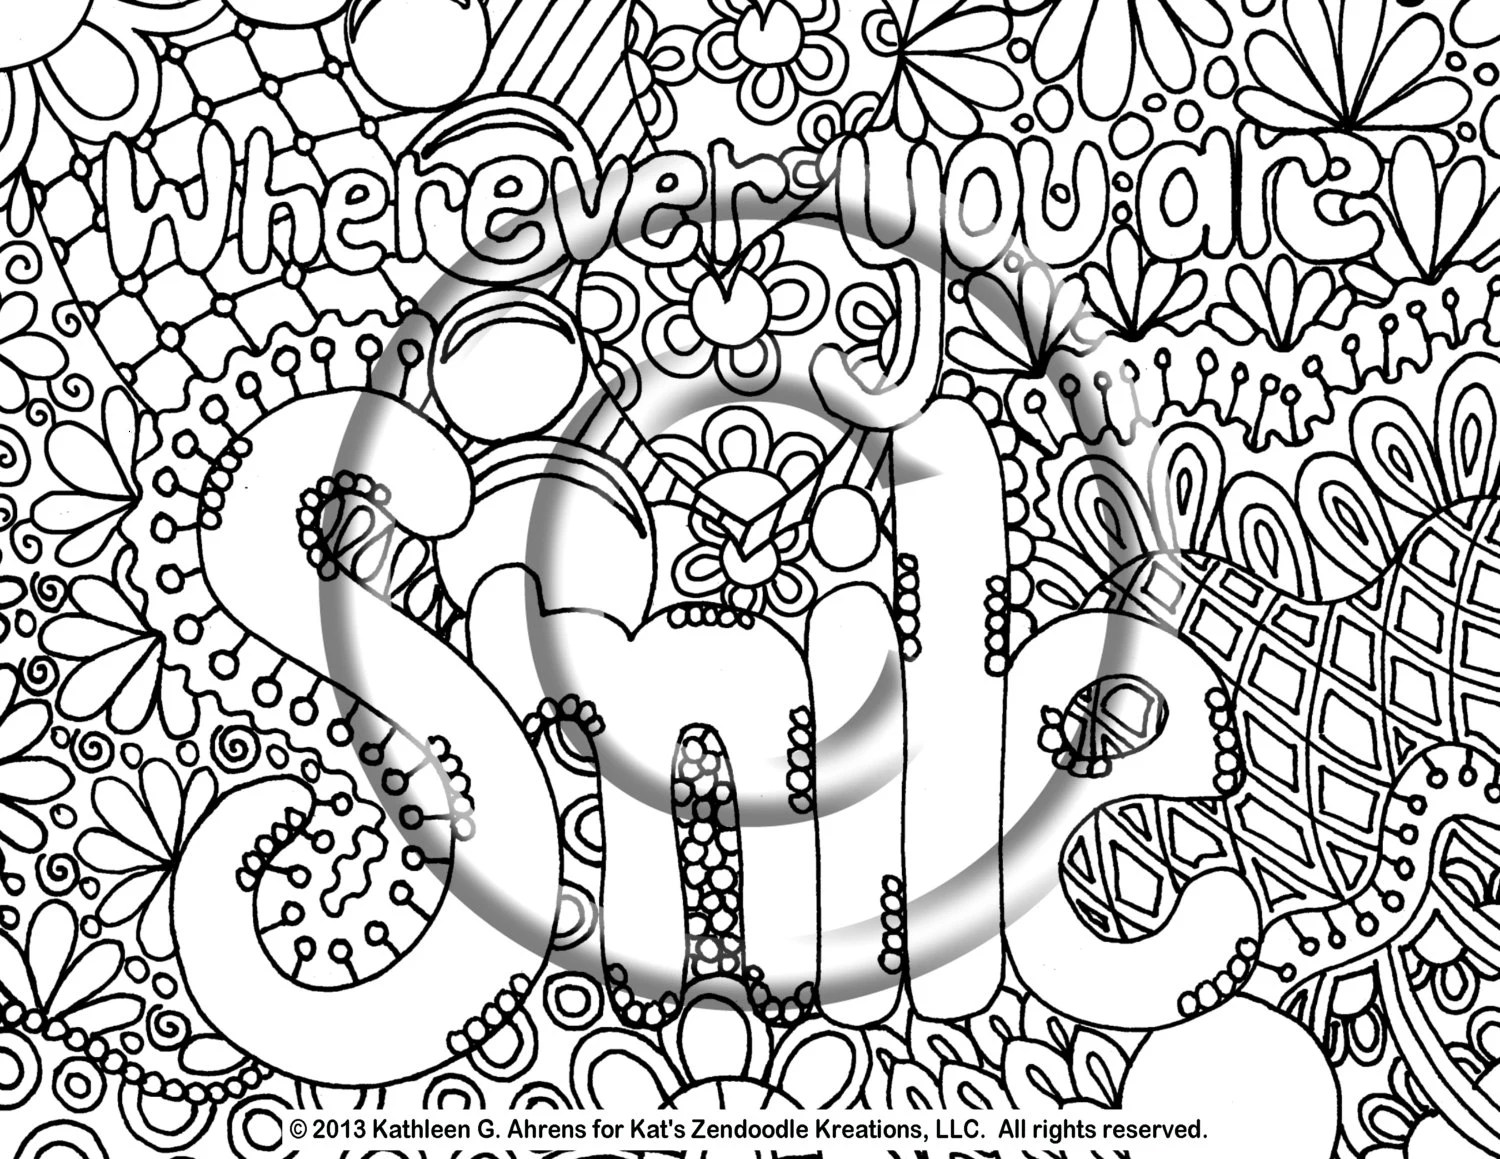 Instant Download Coloring Page Hand Drawn By